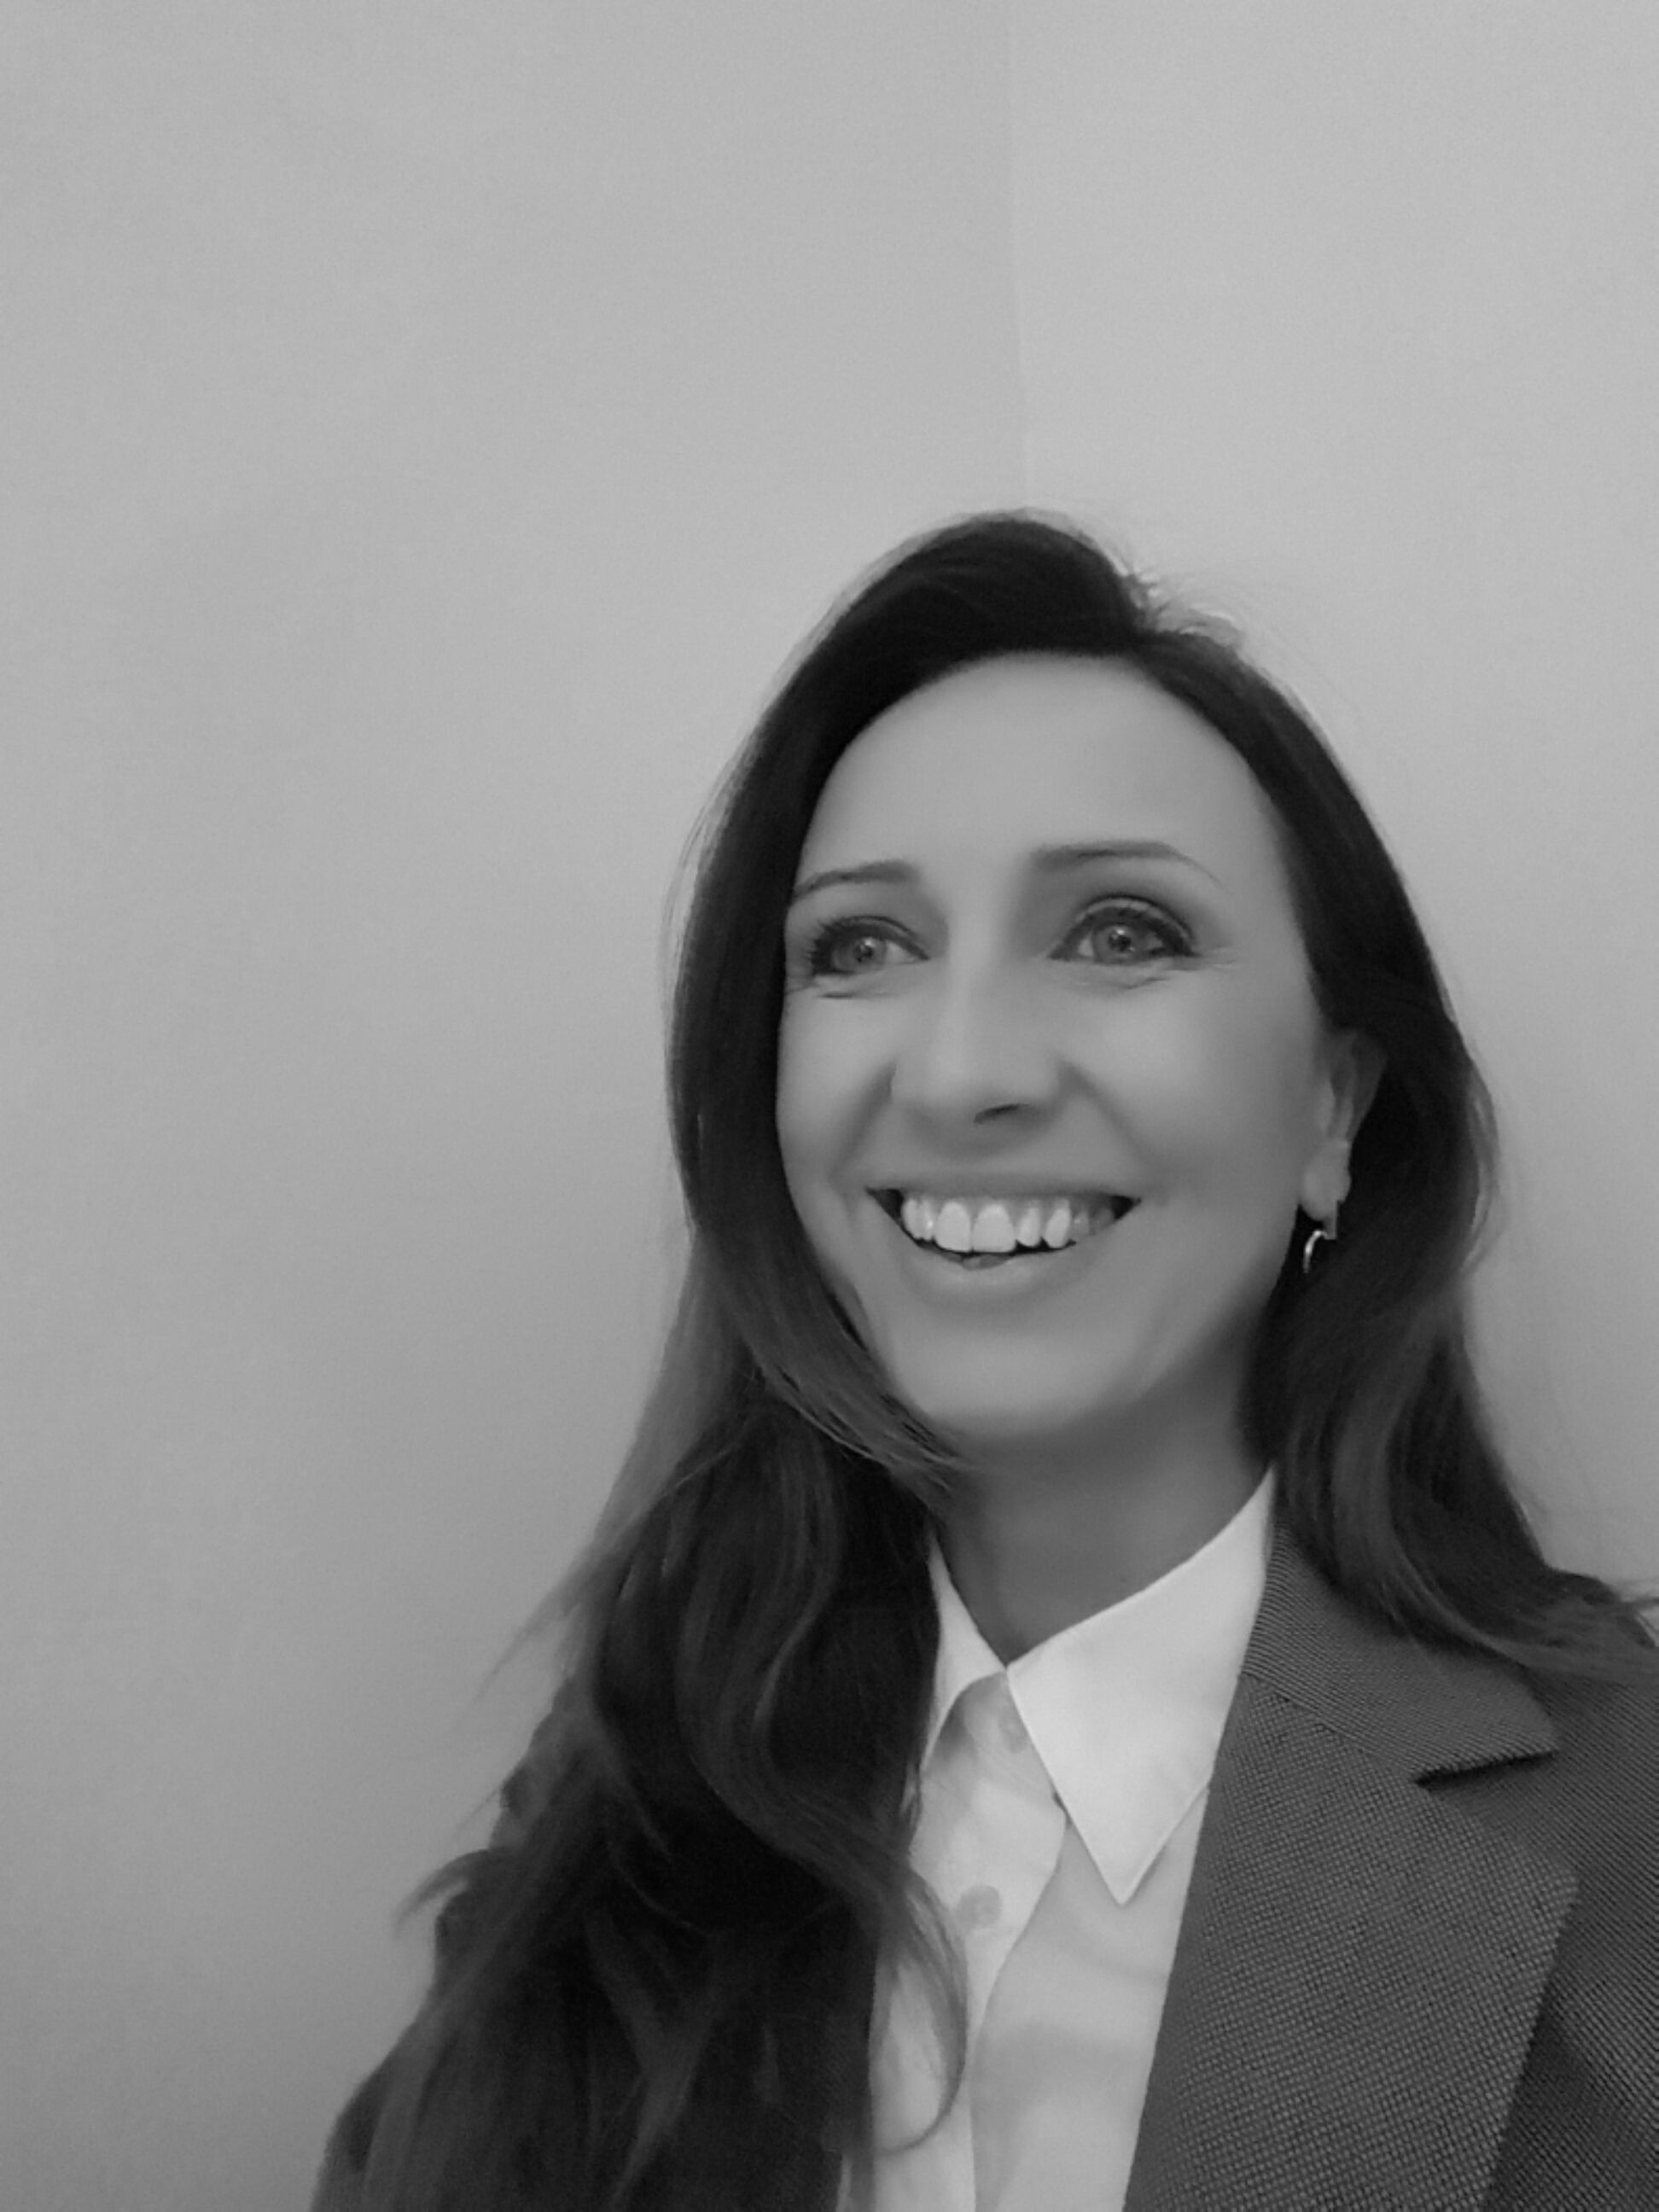 Gemma Timms, Founder, COO   Gemma   spent 12 years in the Treasury as a senior economic adviser to the Chancellor of the Exchequer and Prime Minister and before that negotiated on behalf of the UK Government in Brussels.